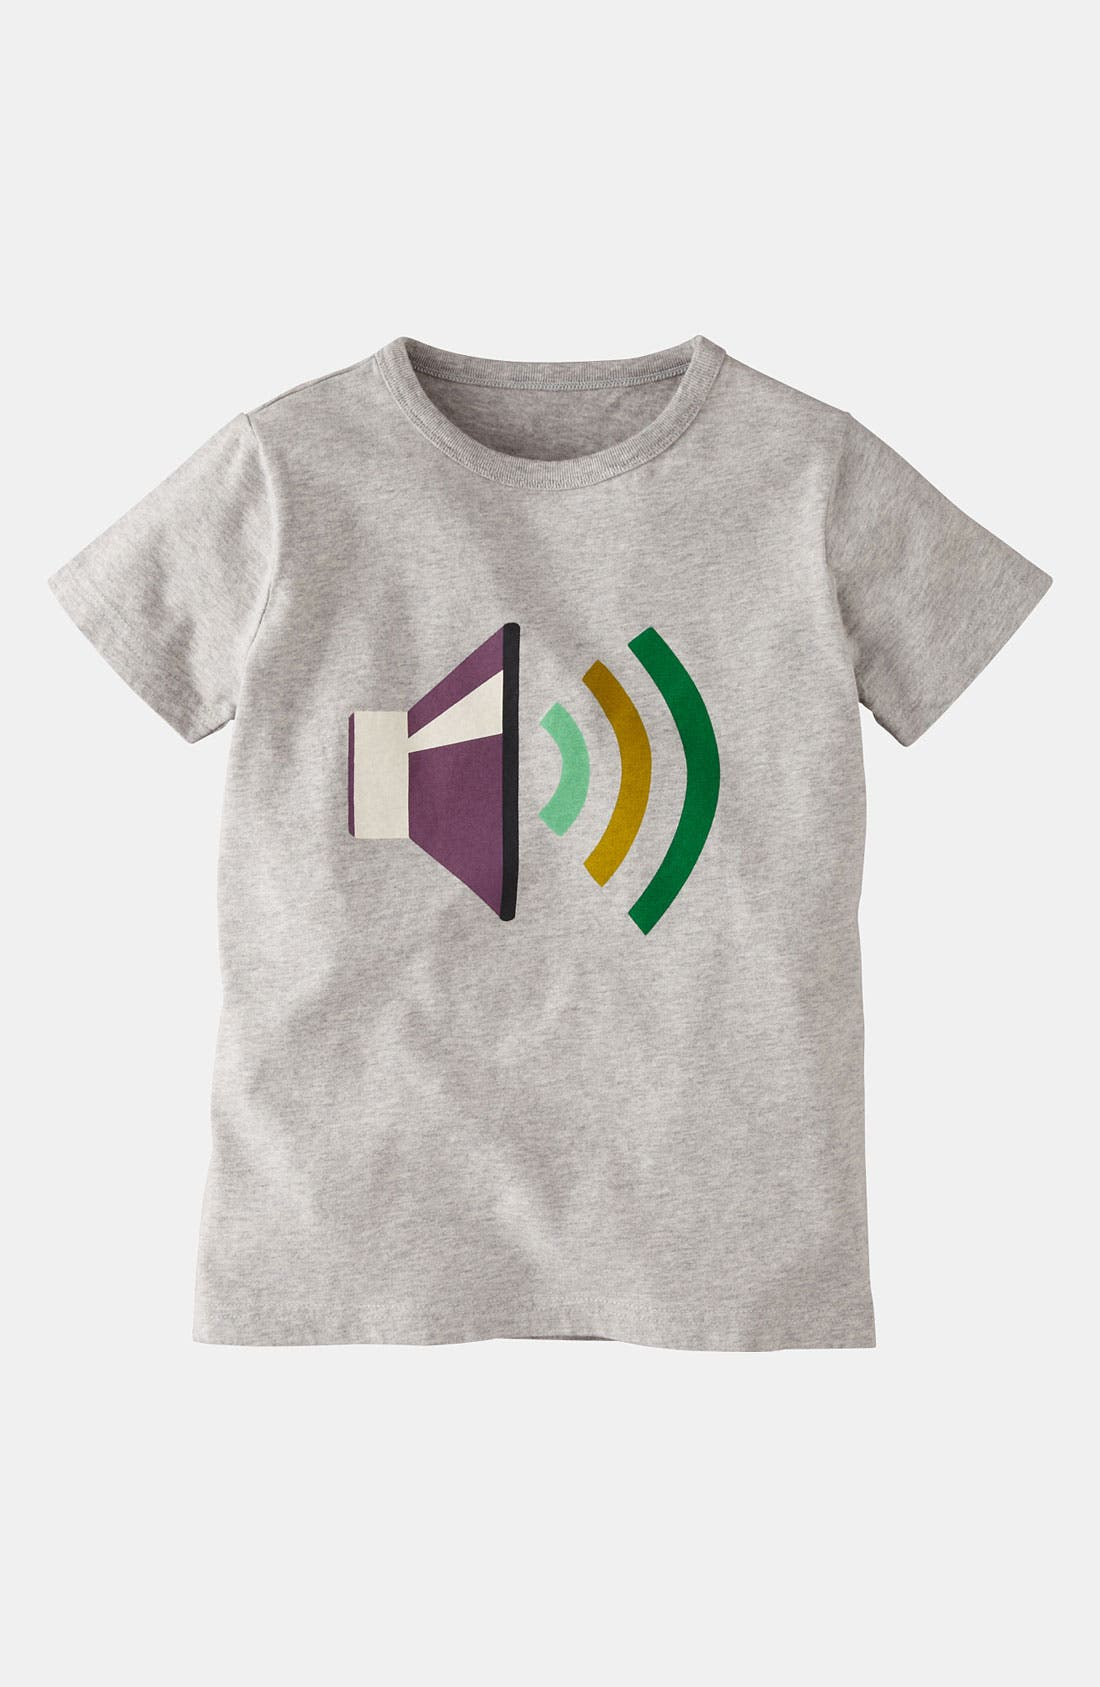 Alternate Image 1 Selected - Mini Boden Graphic T-Shirt (Toddler, Little Boys & Big Boys)